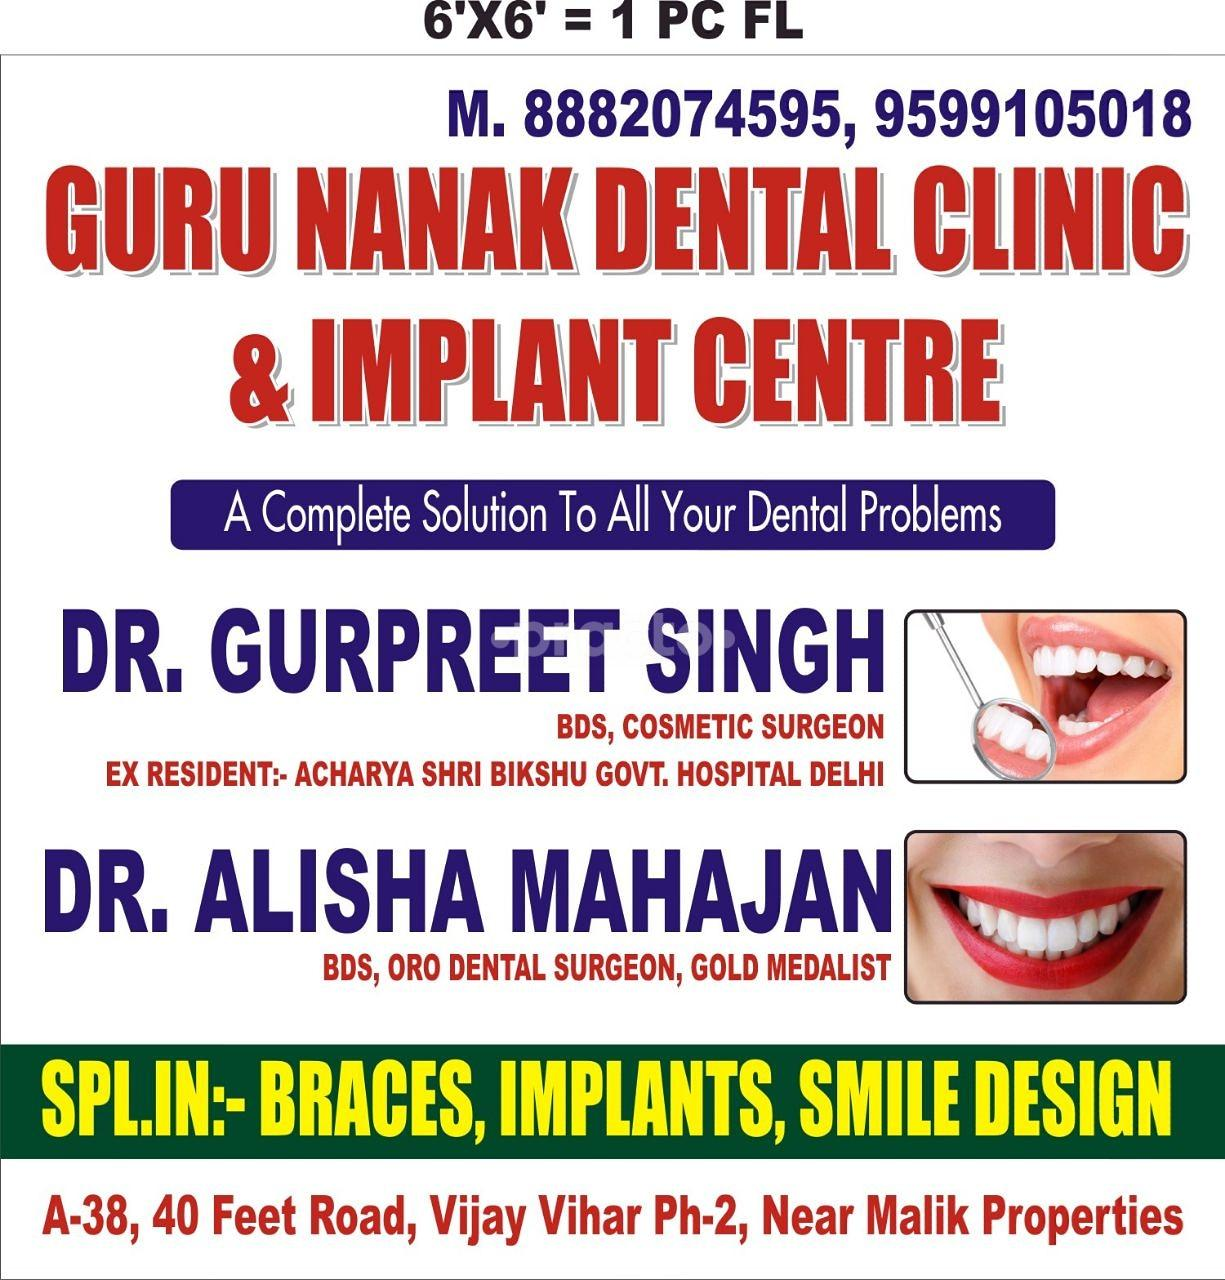 Guru Nanak Dental Clinic & Implant Centre